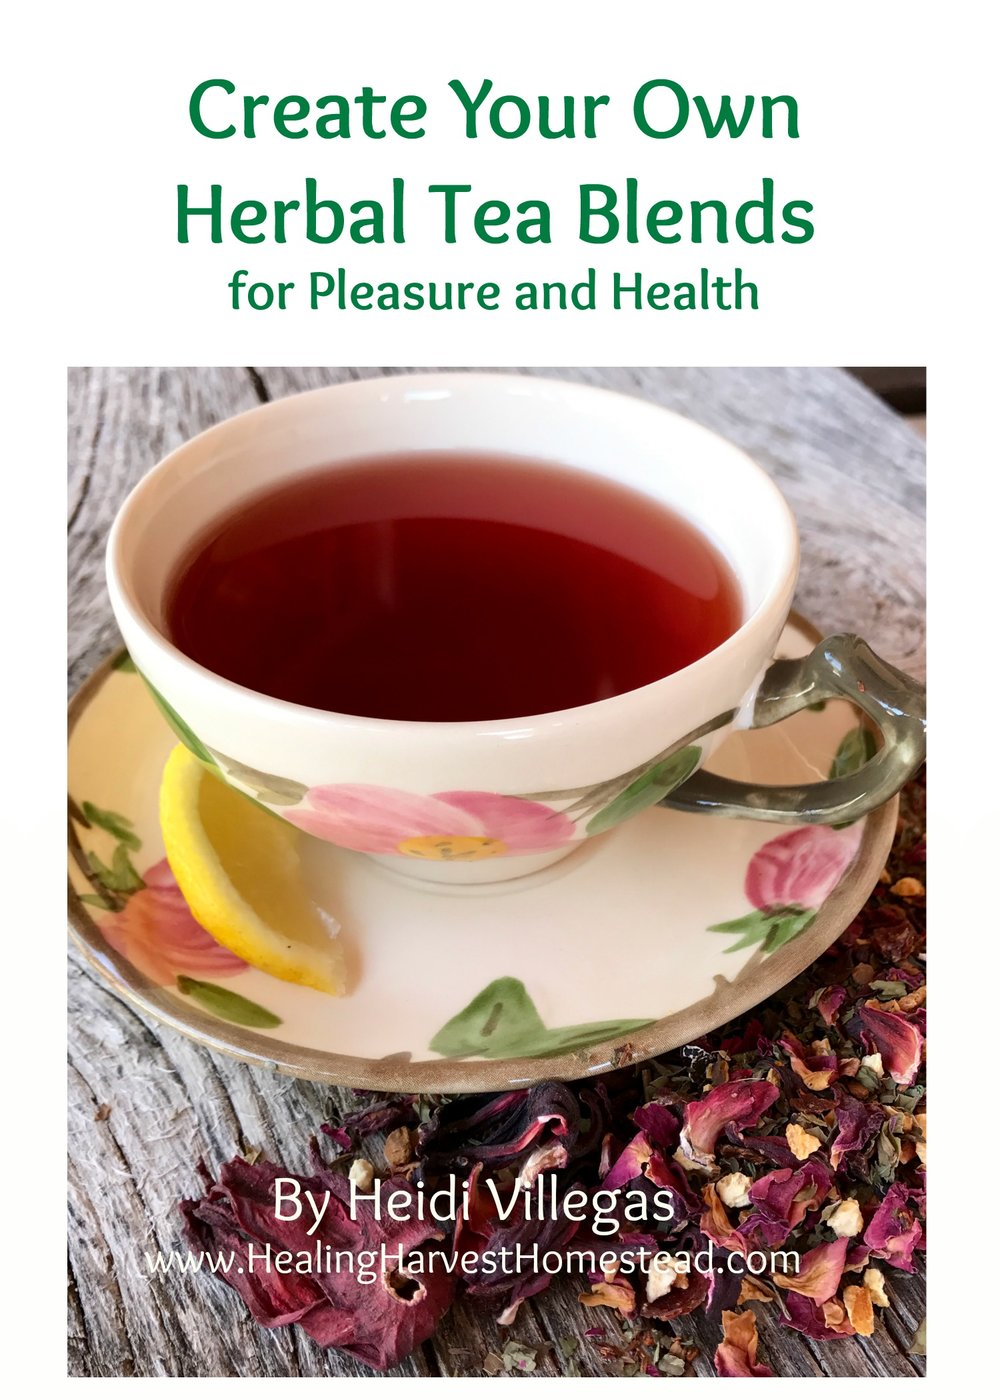 If you have ever wanted to get started in herbalism but didn't want to commit to an entire course, starting off with creating herbal teas is a fun and easy way to begin! Learn how in this book!